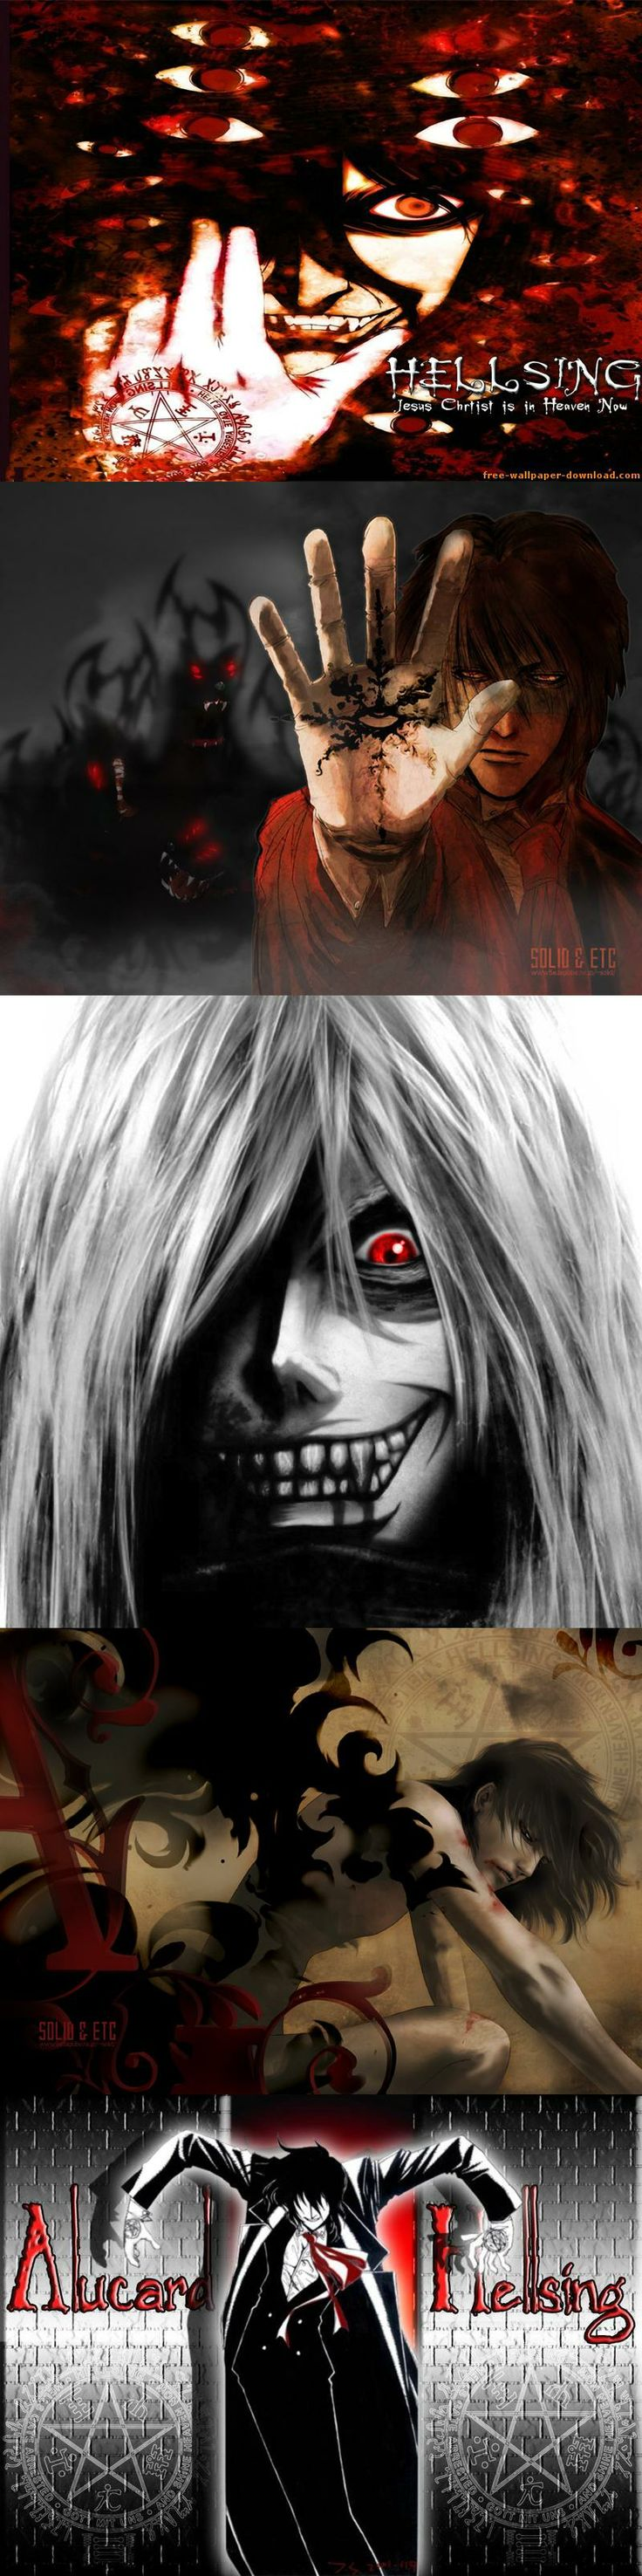 is hellsing any good ;P